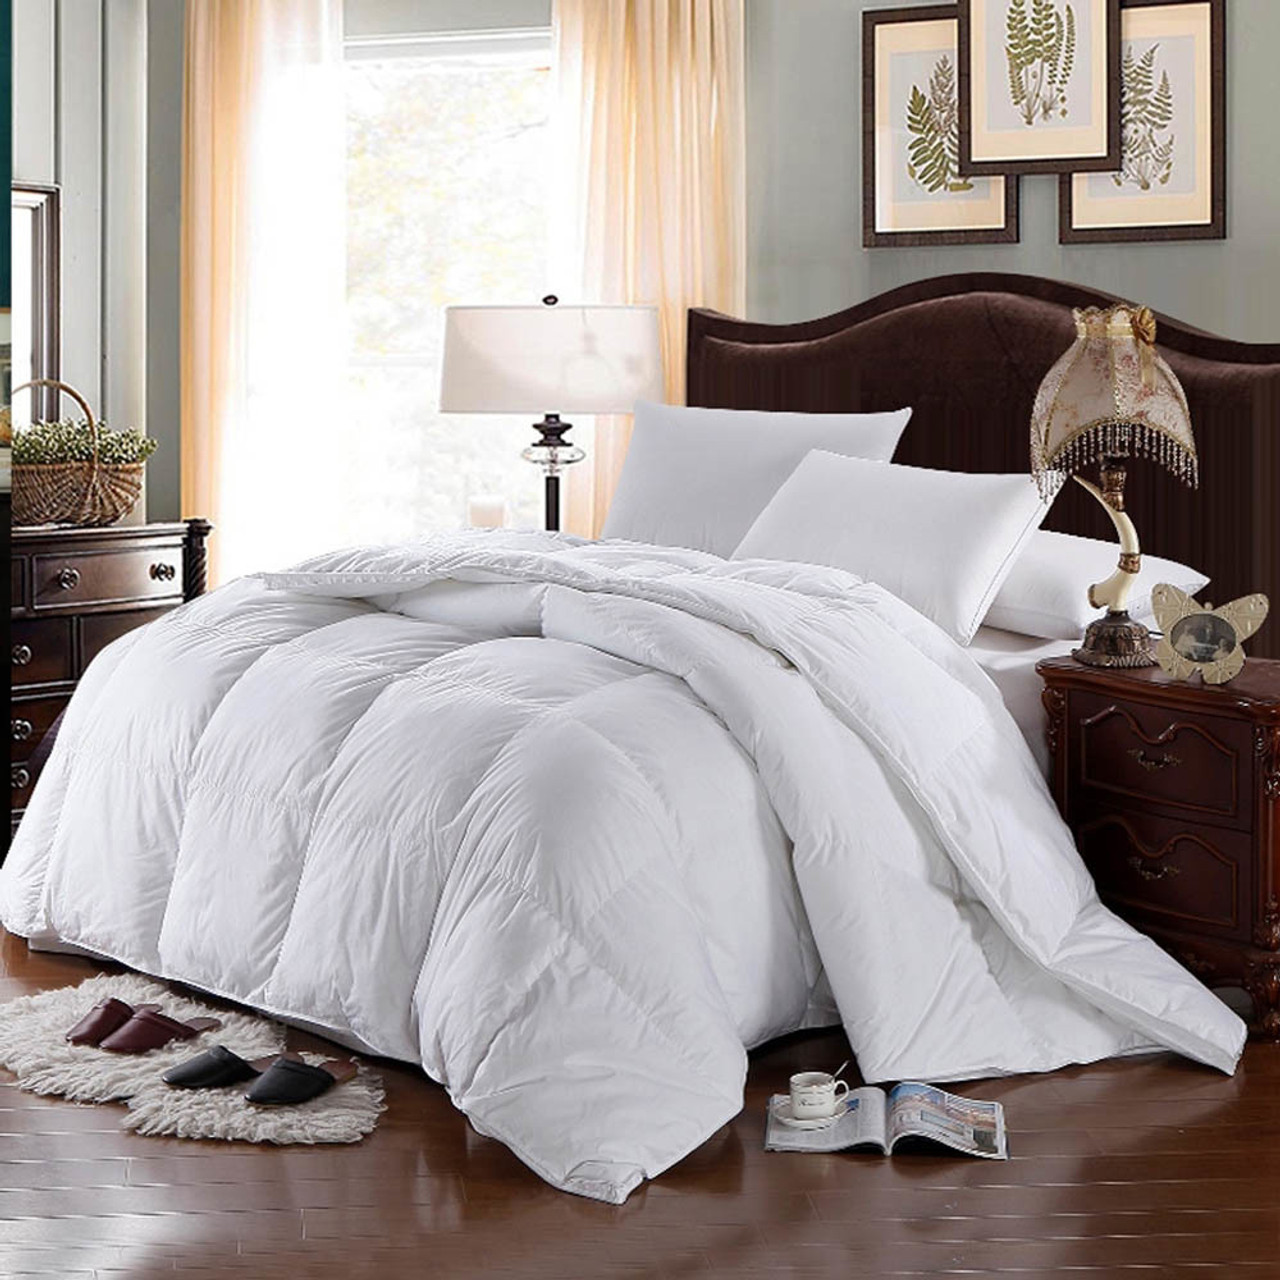 100 Cotton Hungarian Goose Comforter 500-thread-count 750fp